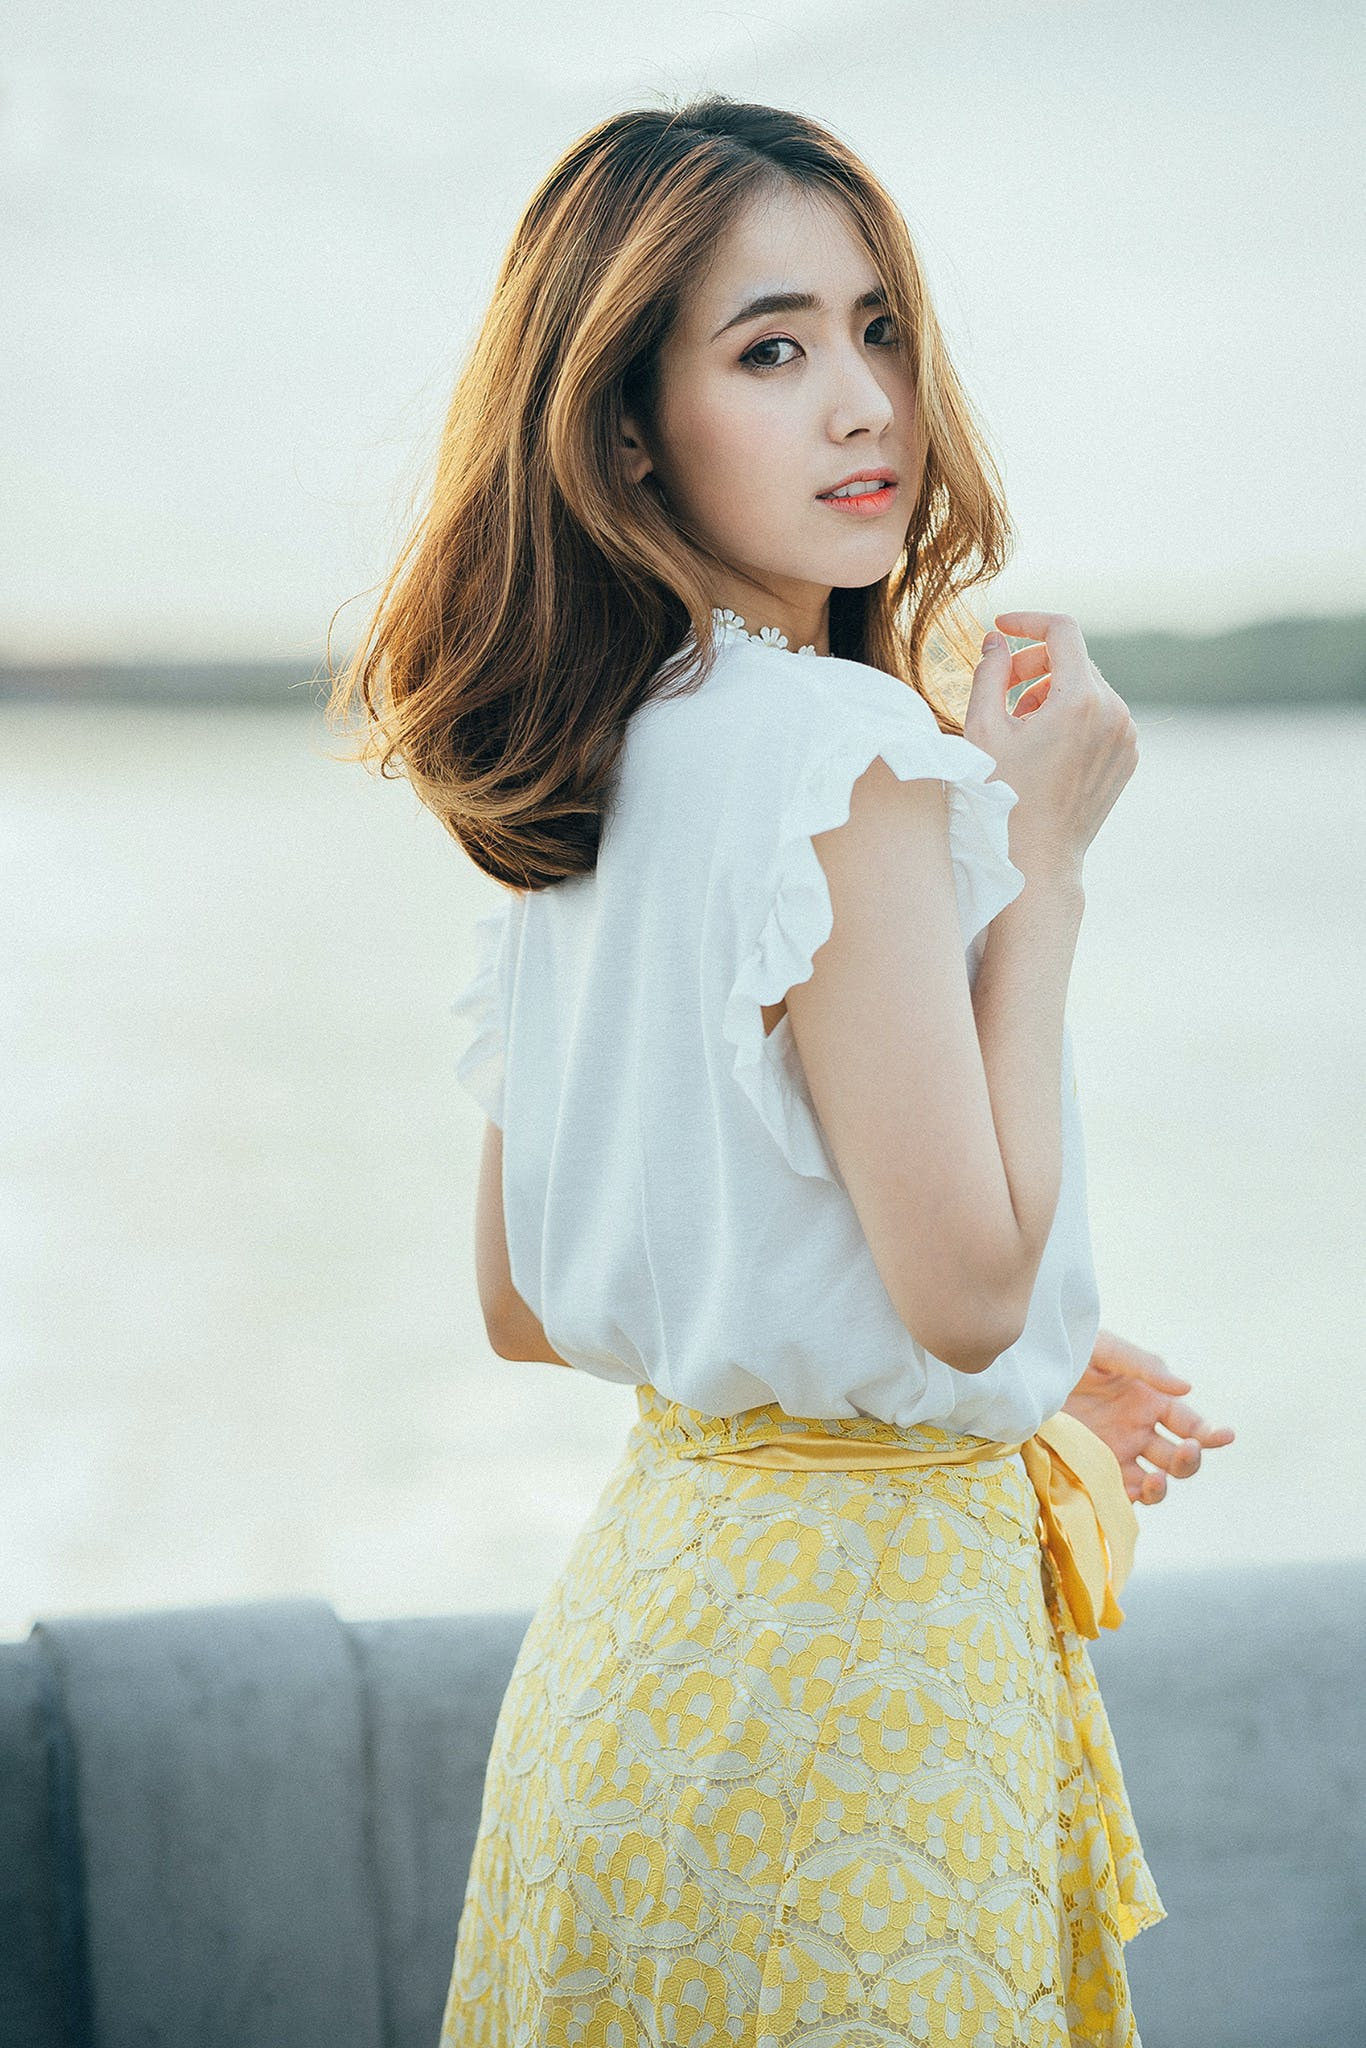 Photo of Woman Wearing White Sleeveless Shirt and Yellow Floral Skirt Near Body of Water